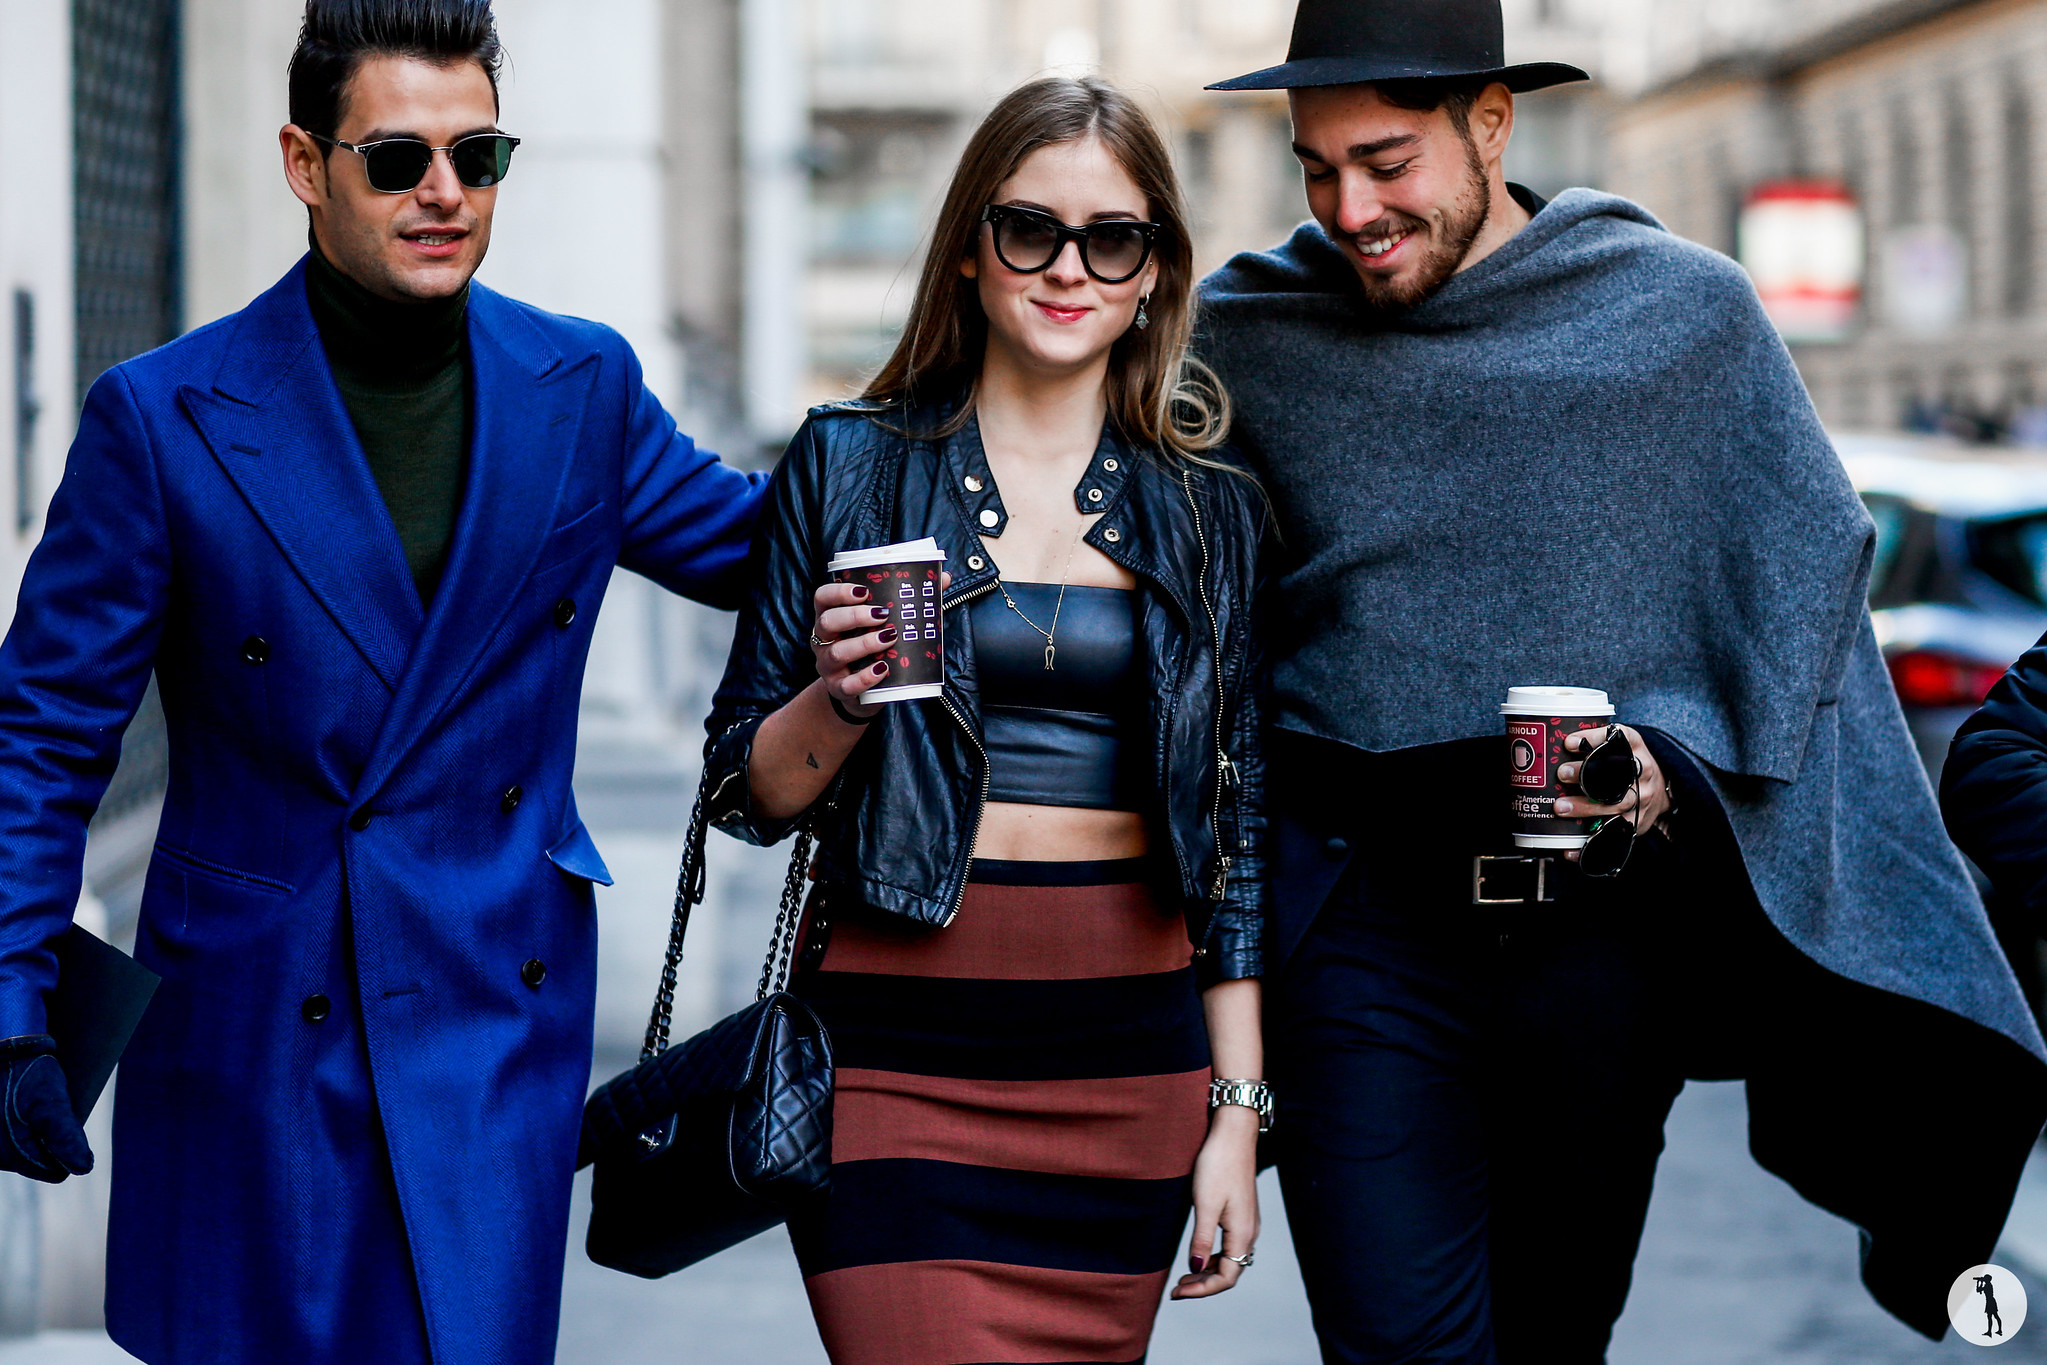 Frank Gallucci, Valentina Ferragni and Luca Vezil at Milan Fashion Week Menswear